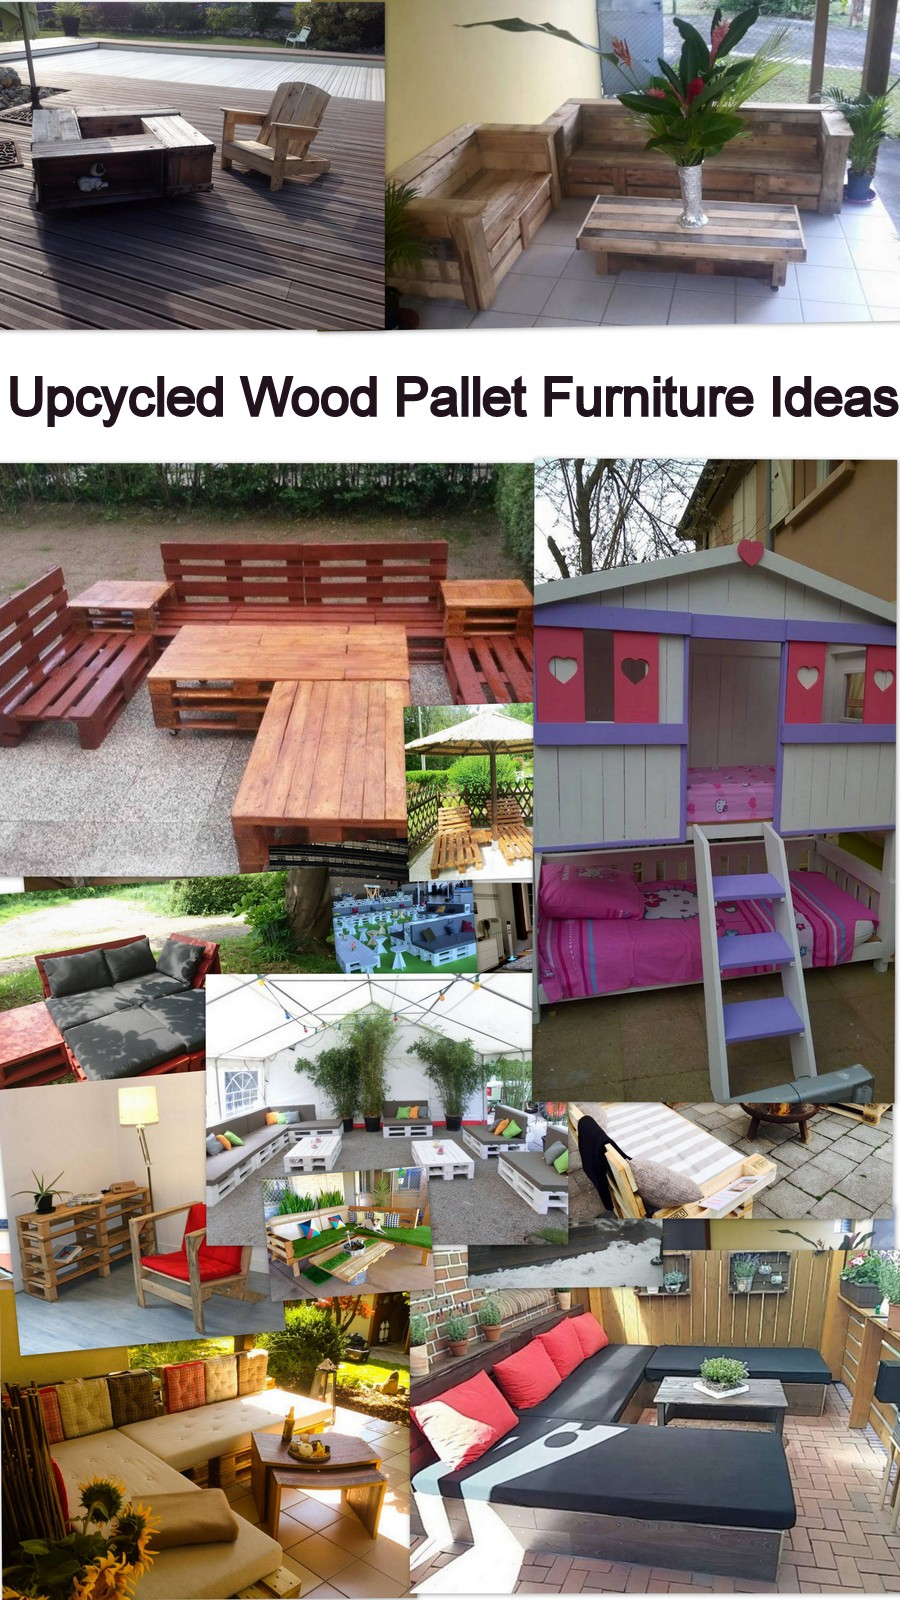 Upcycled Wood Pallet Furniture Ideas Pallet Furniture Projects